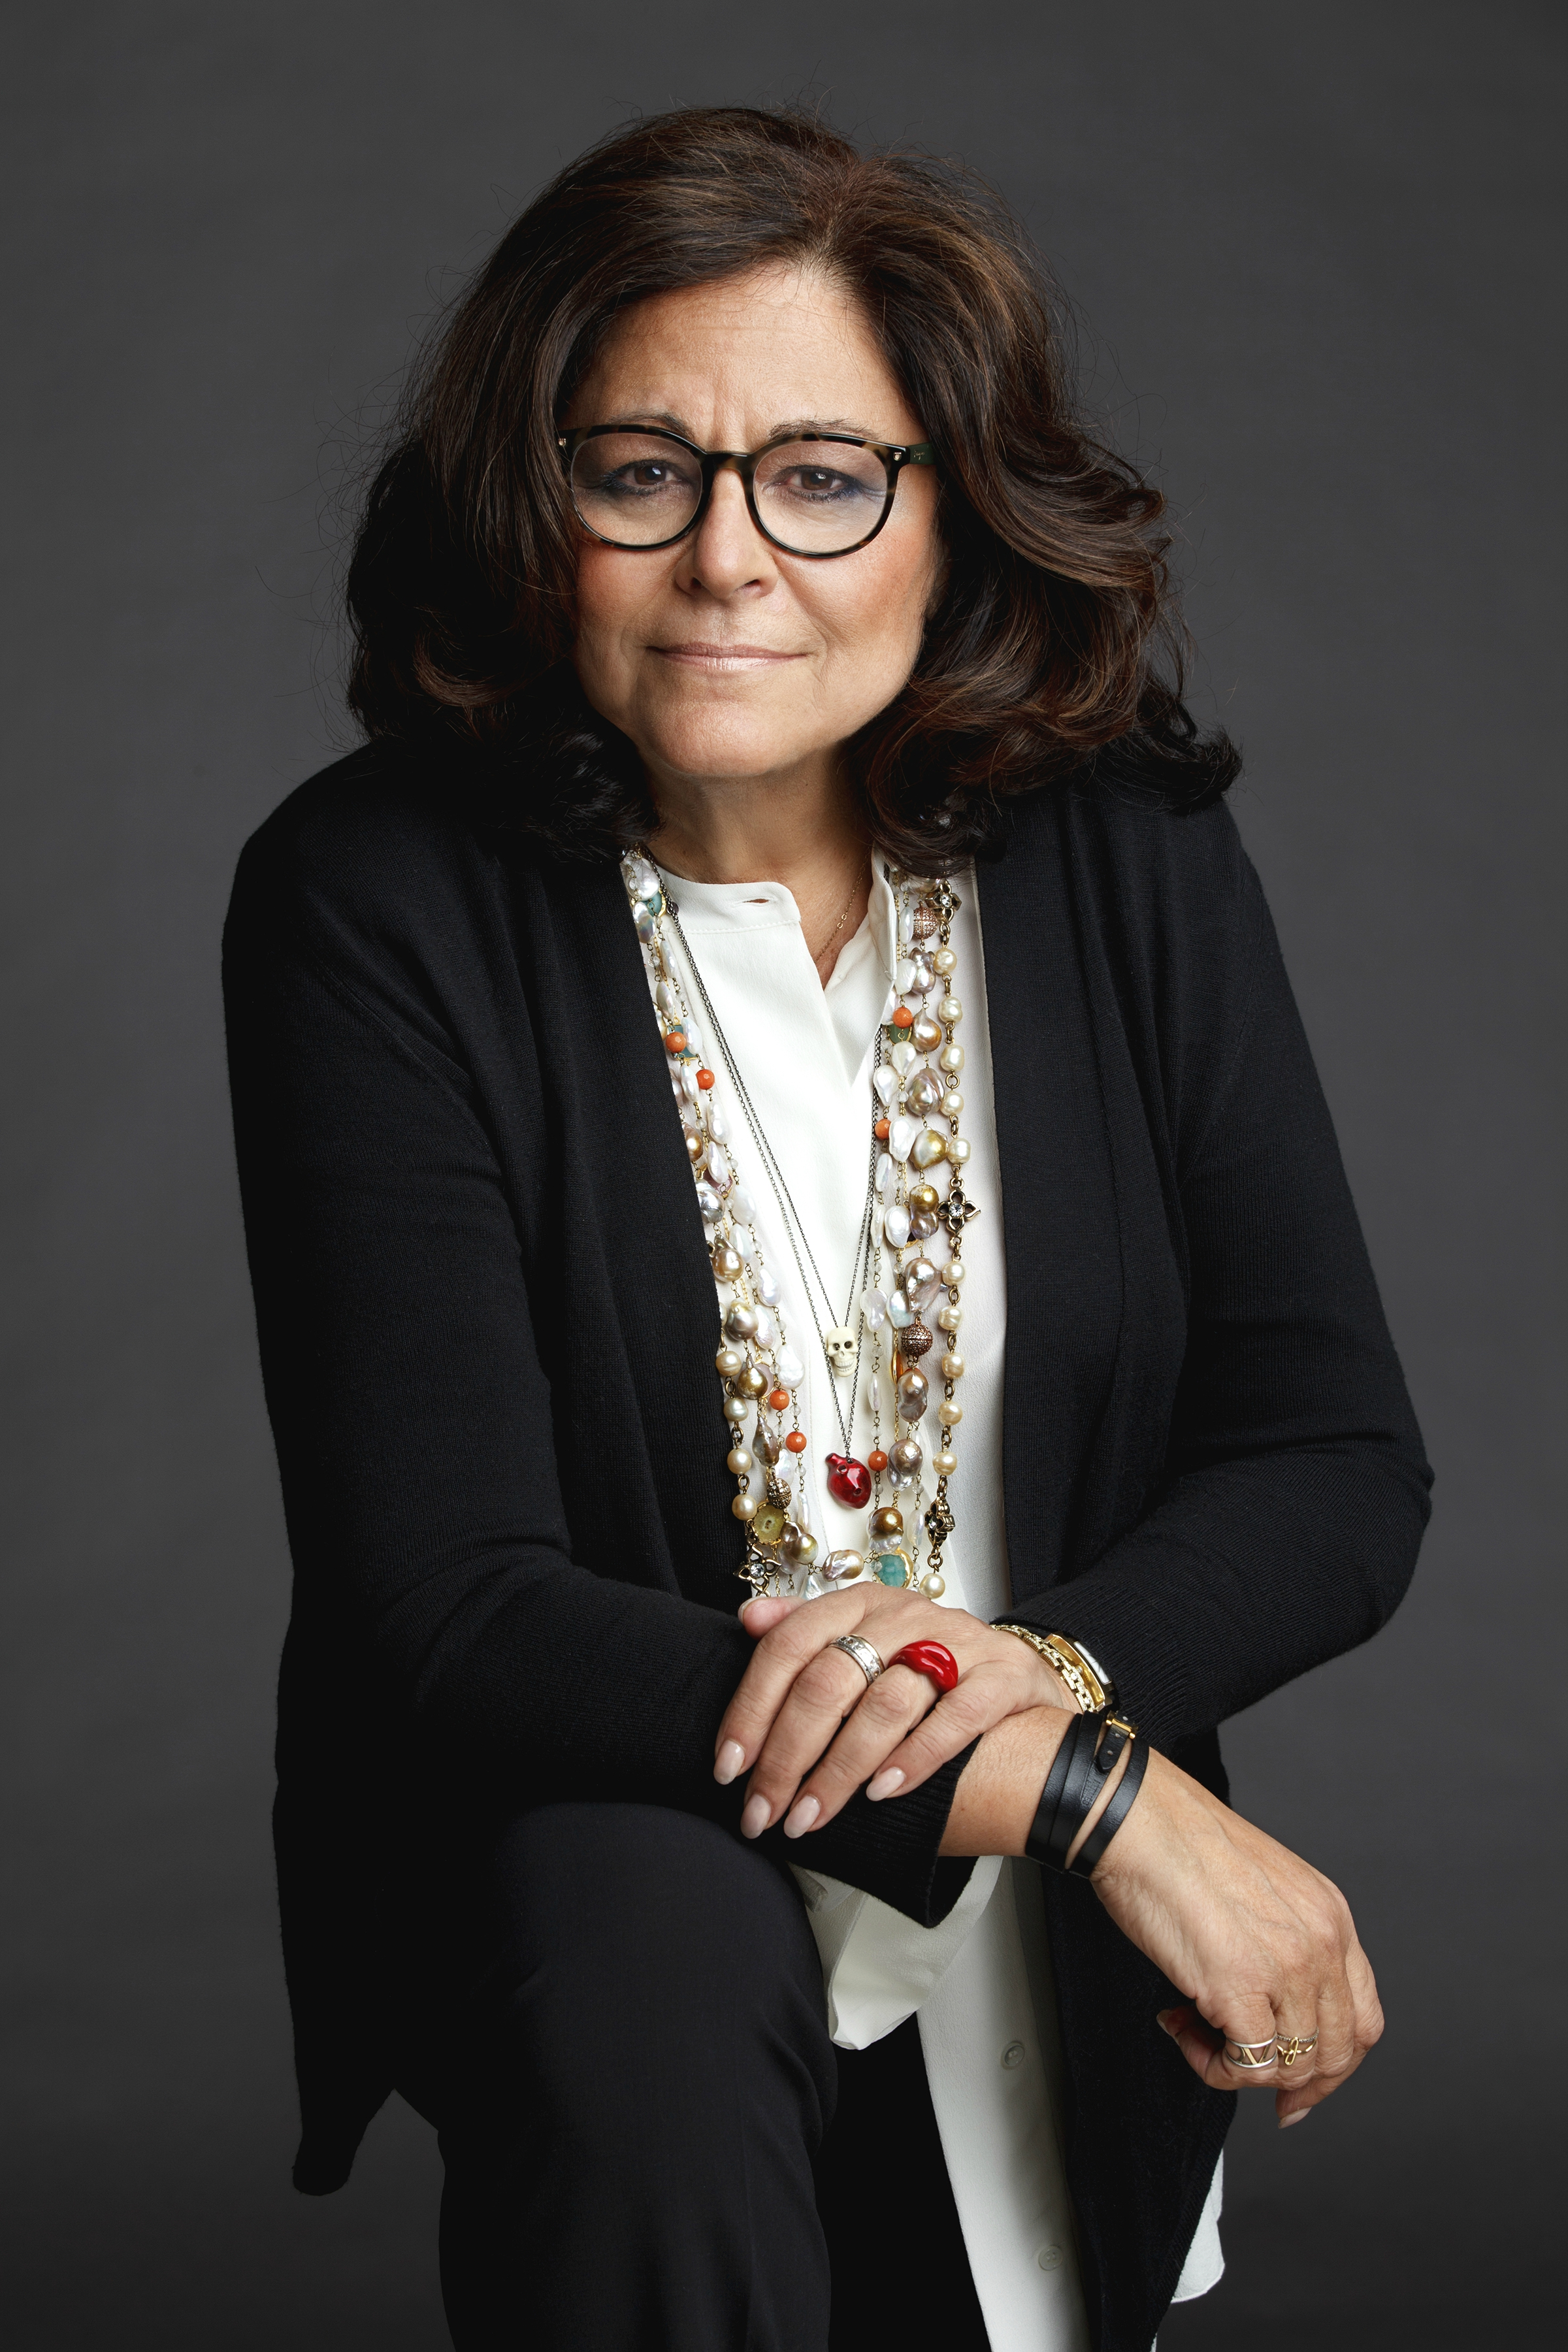 Fern Mallis - Founder, New York Fashion Week